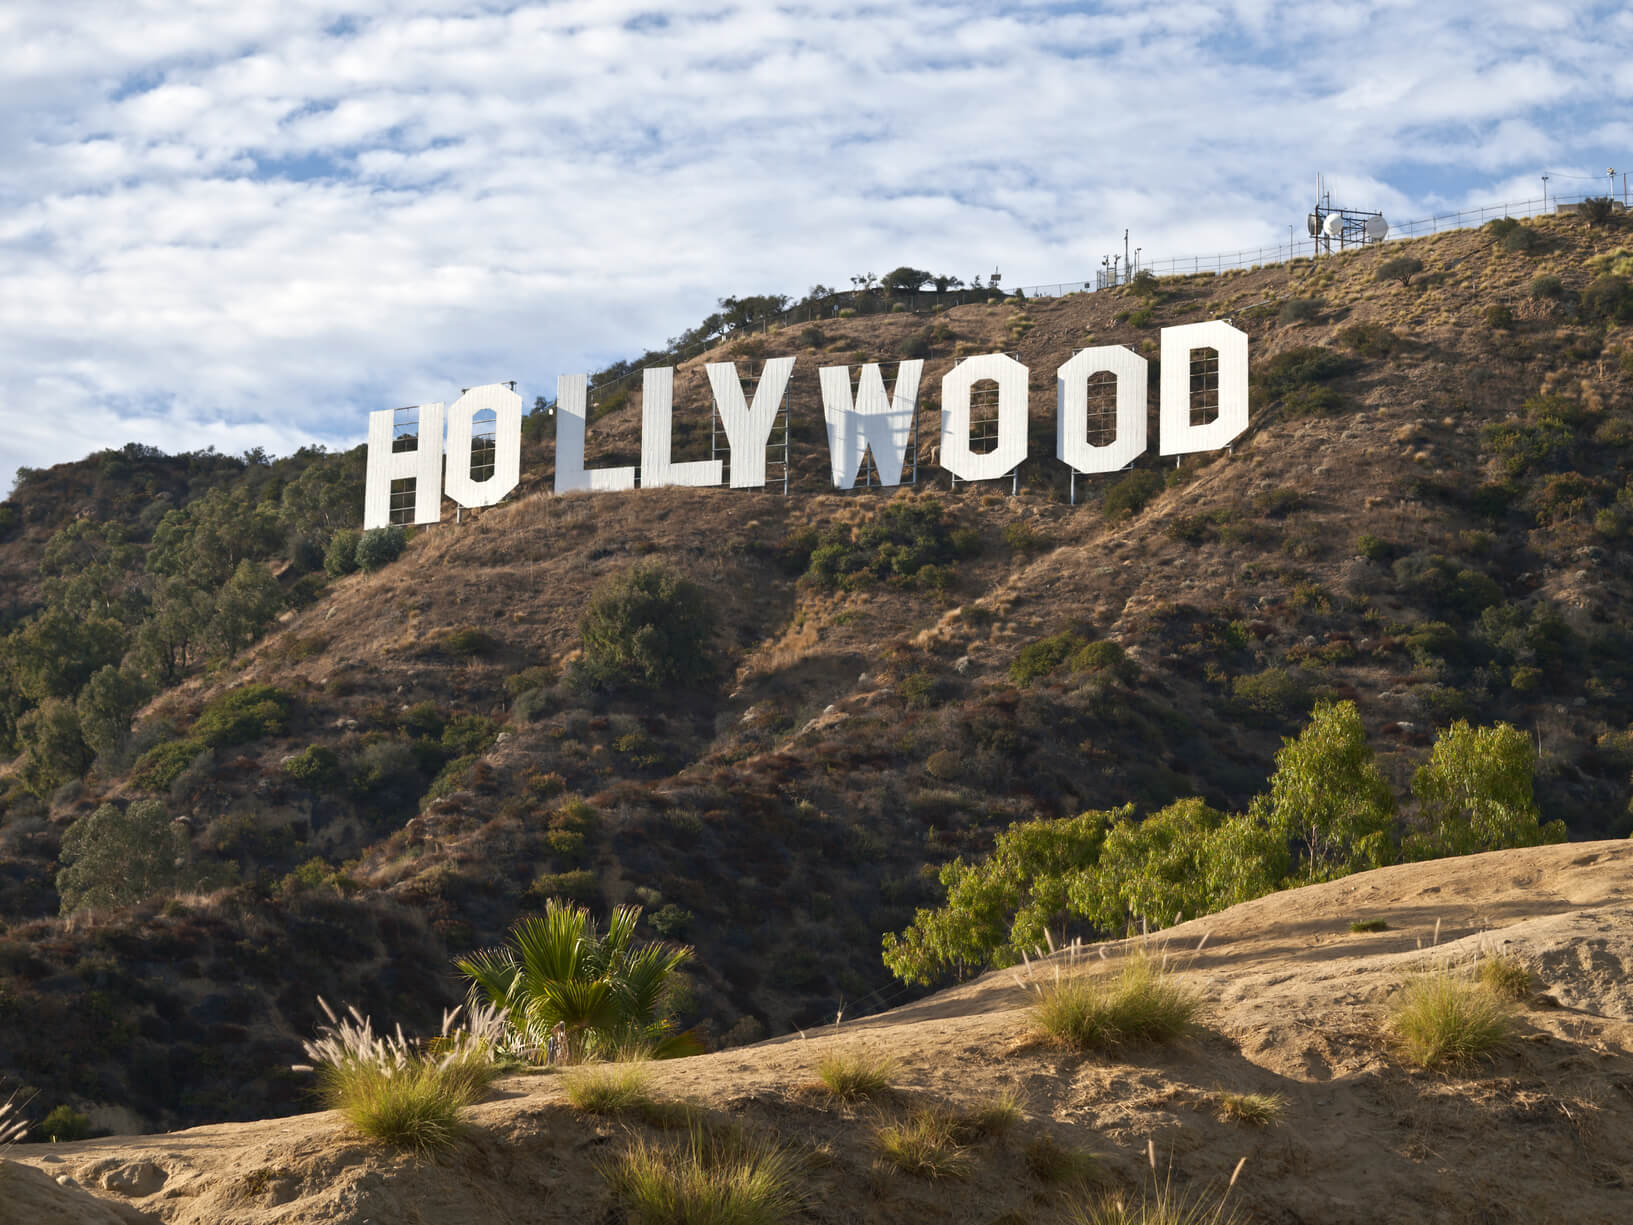 Non-stop from Seattle to Los Angeles (& vice versa) for only $70 roundtrip (Oct dates)